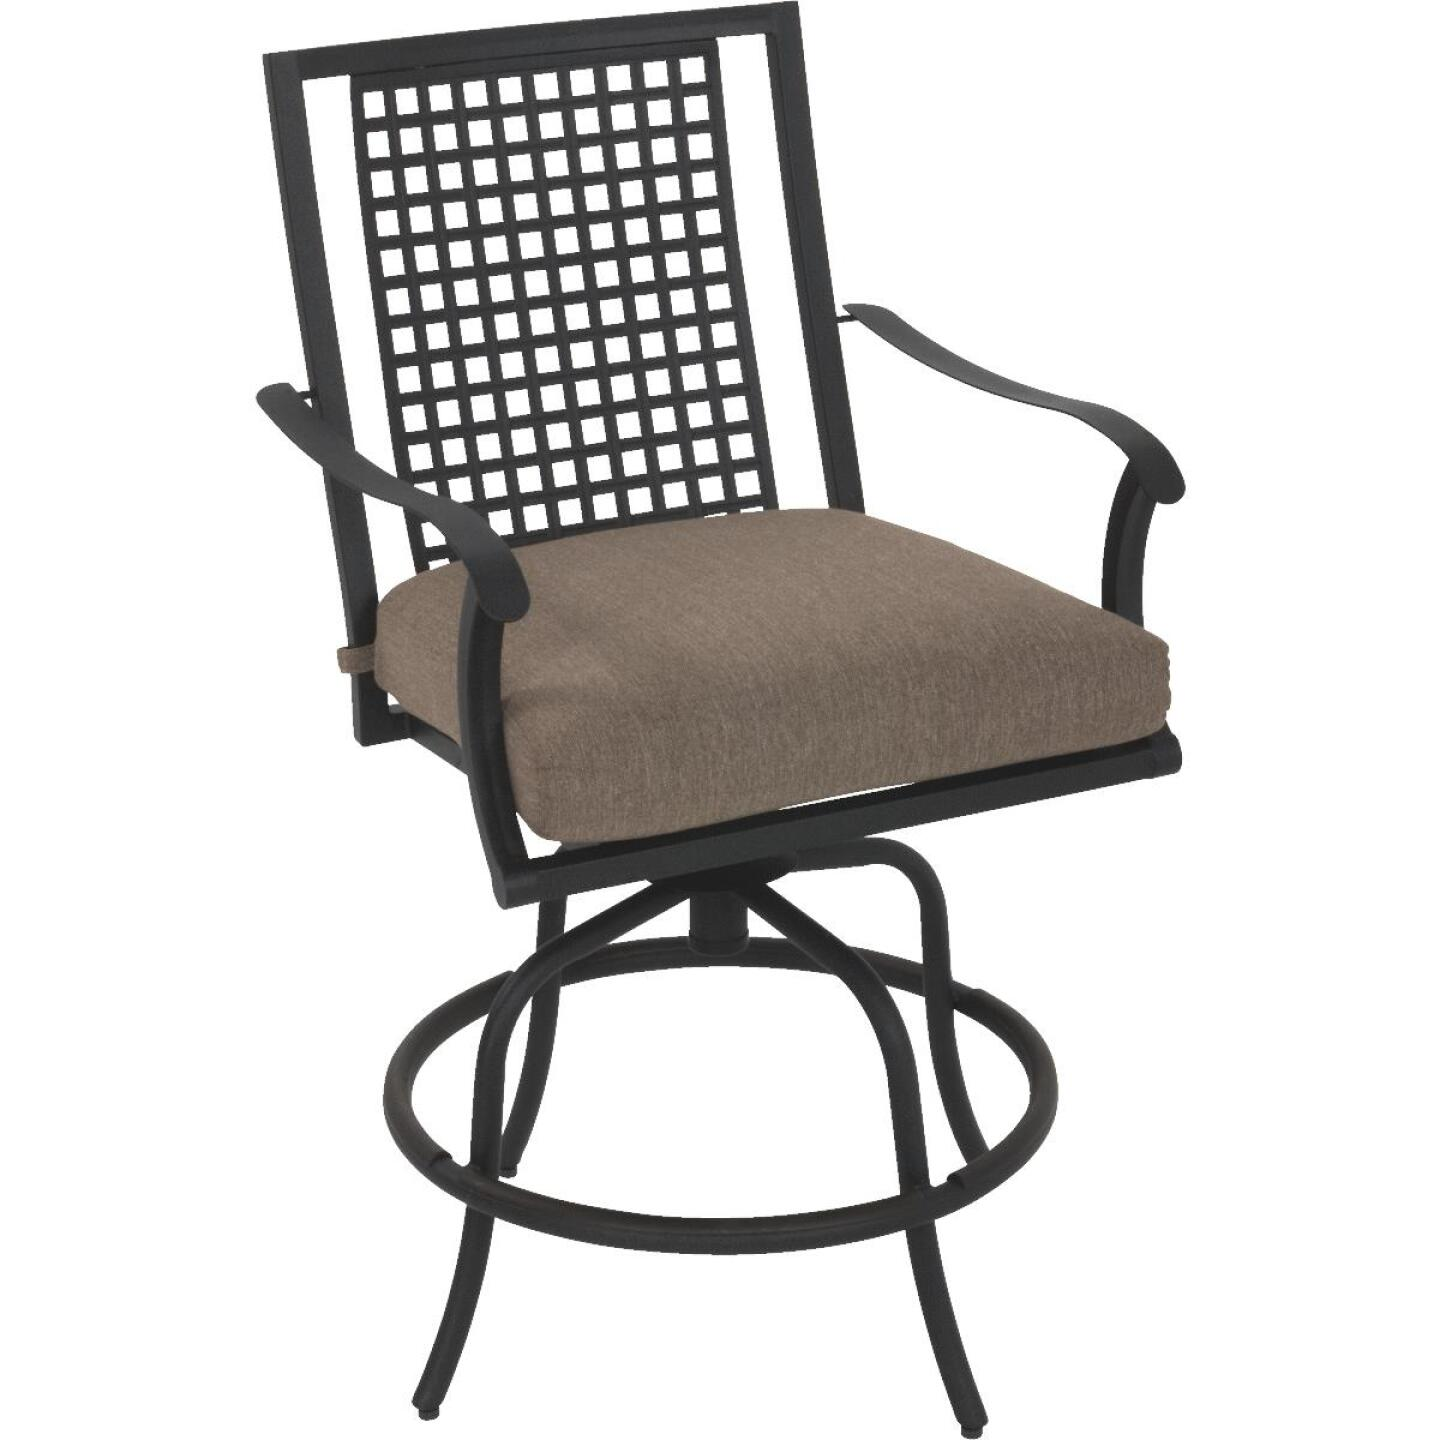 Palazzo 3-Piece Bistro Set with Seat Cushions Image 3